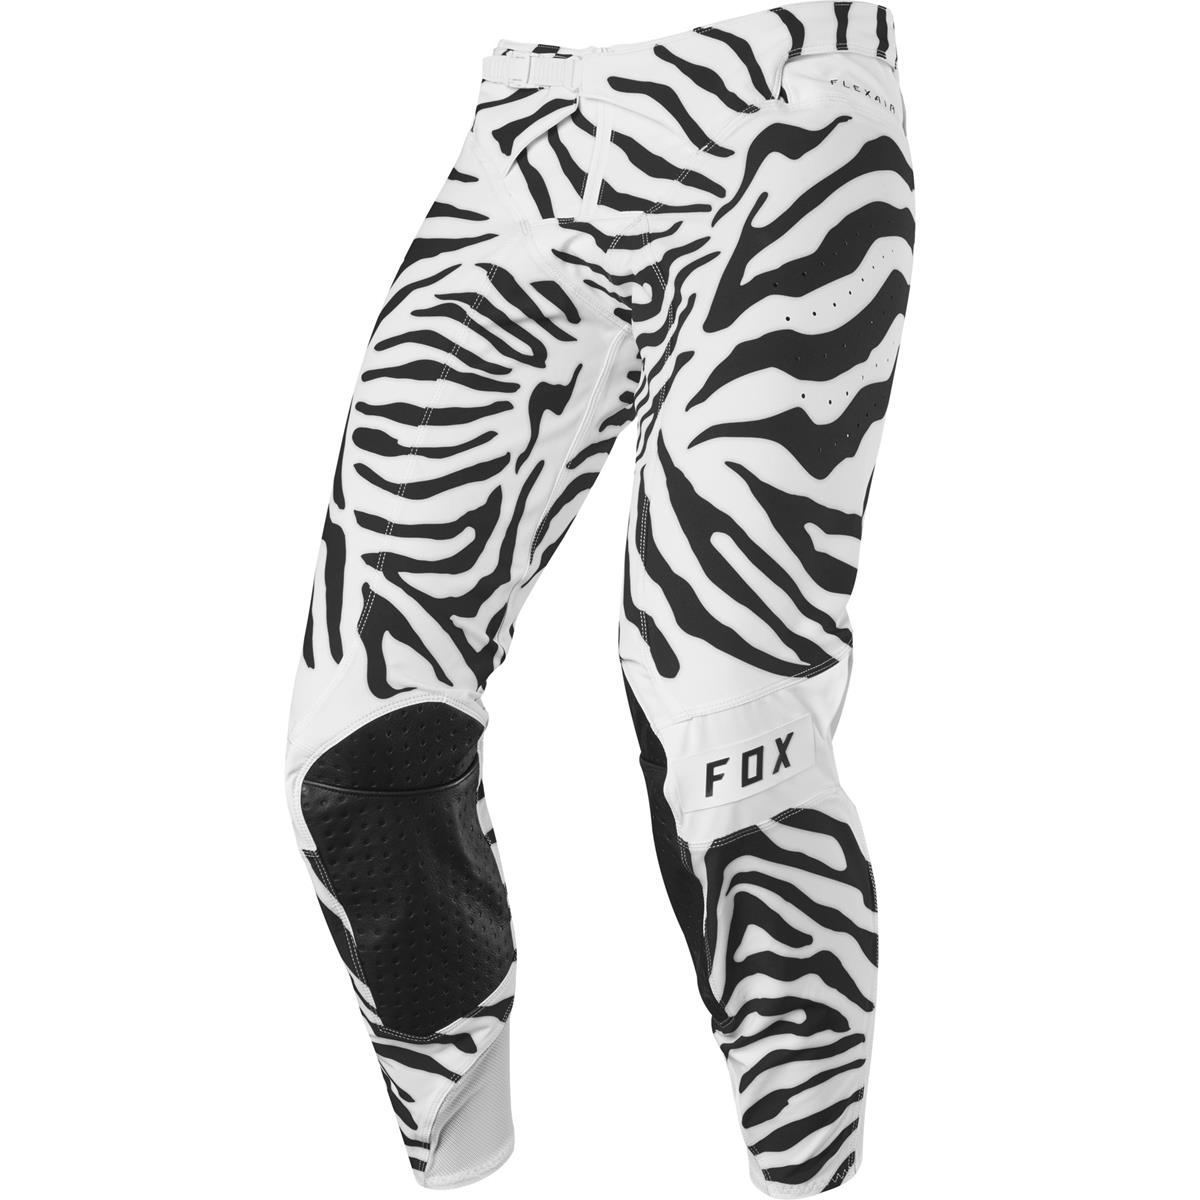 Fox MX Hose Flexair Zebra Limited Edition - Zebra